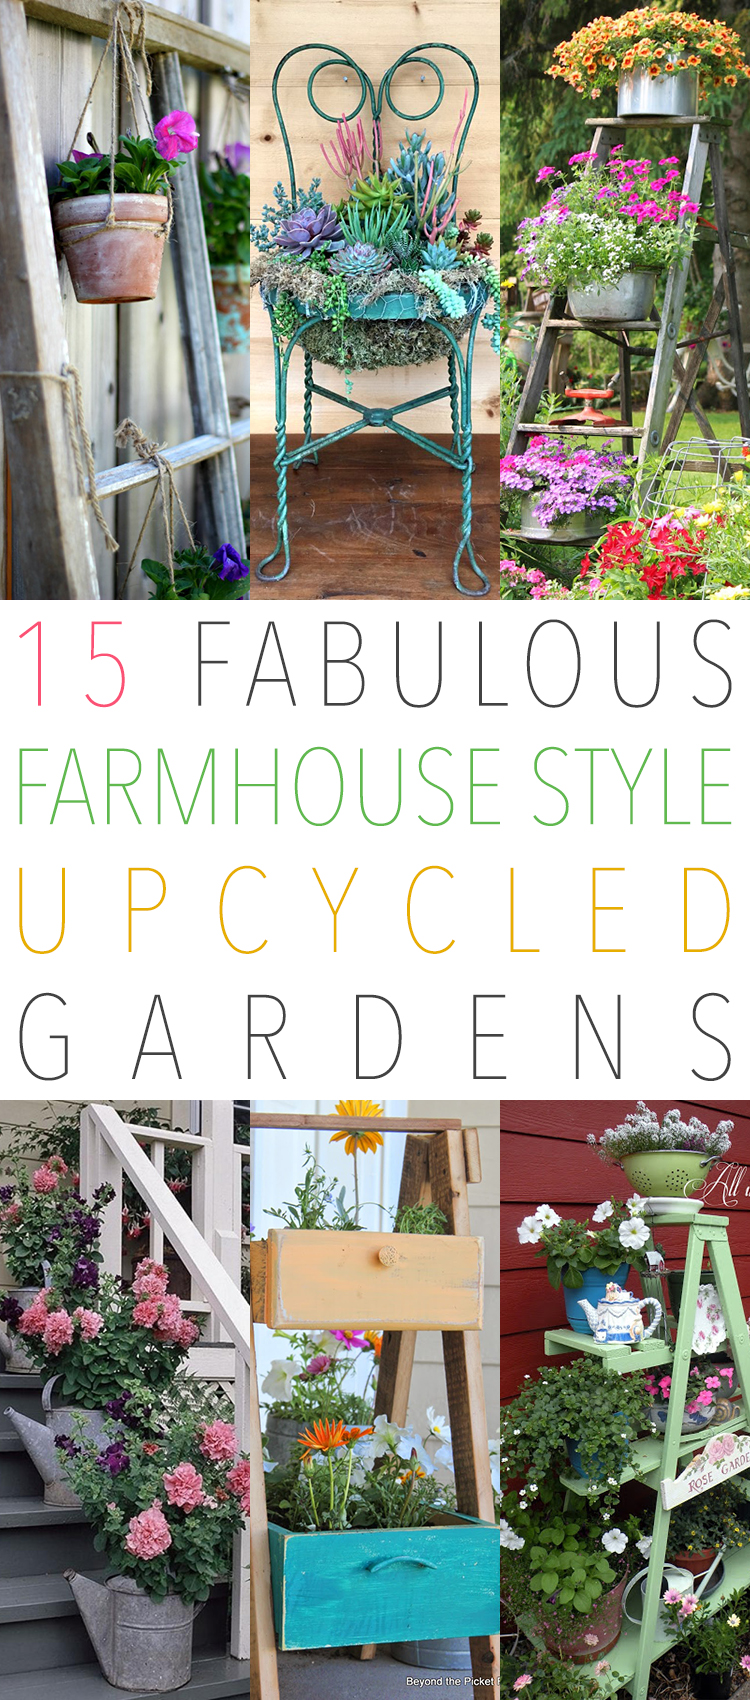 It's never to early to start planning your Modern Farmhouse Landscape... Come and get some inspiration with our 6 Ingredients for a Modern Farmhouse Landscape